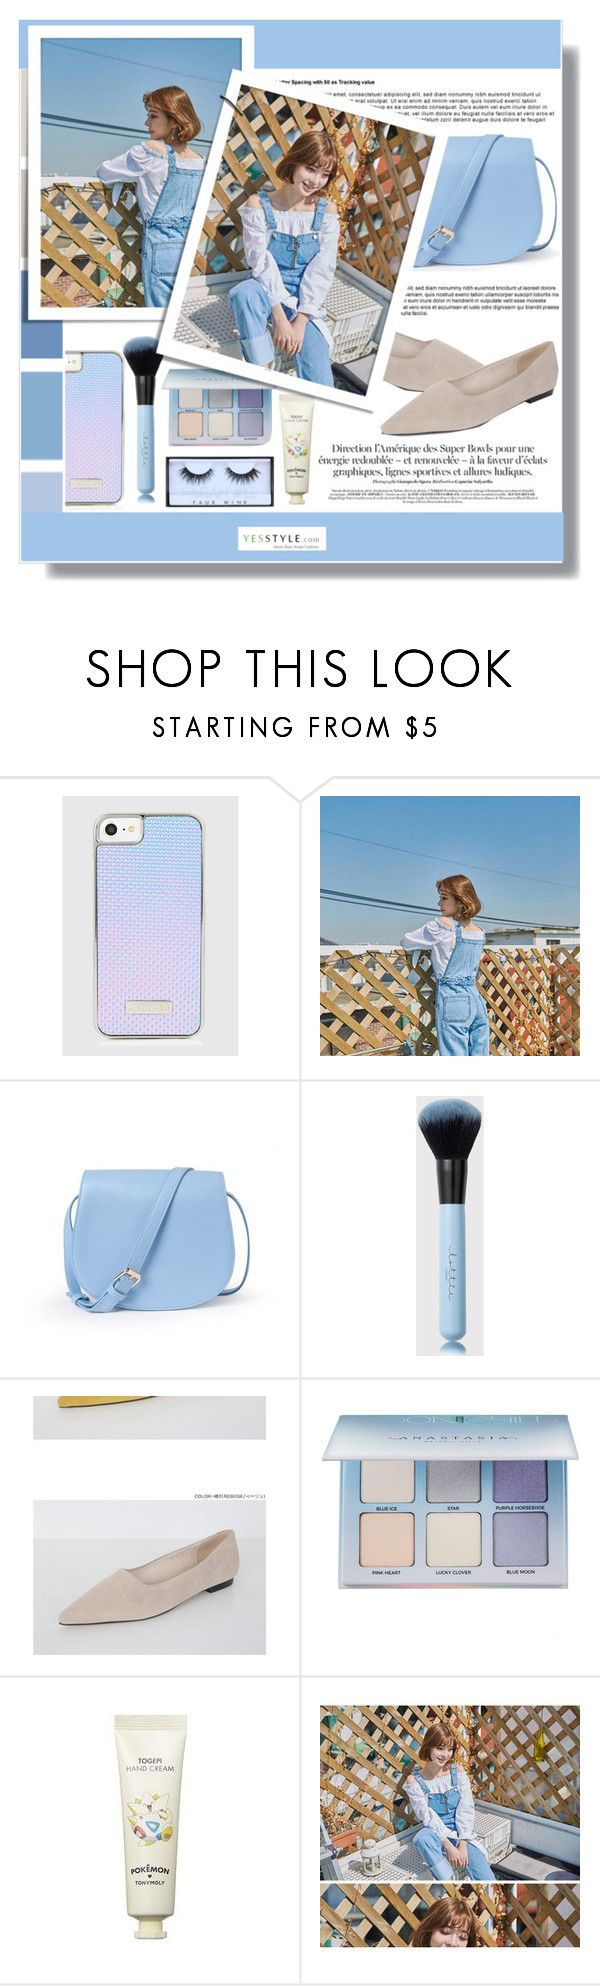 """YesStyle - 10% off coupon"" by clumsy-dreamer ❤ liked on Polyvore featuring Anastasia Beverly Hills, Tony Moly, Huda Beauty, yesstyle, prespring and productAnchor"